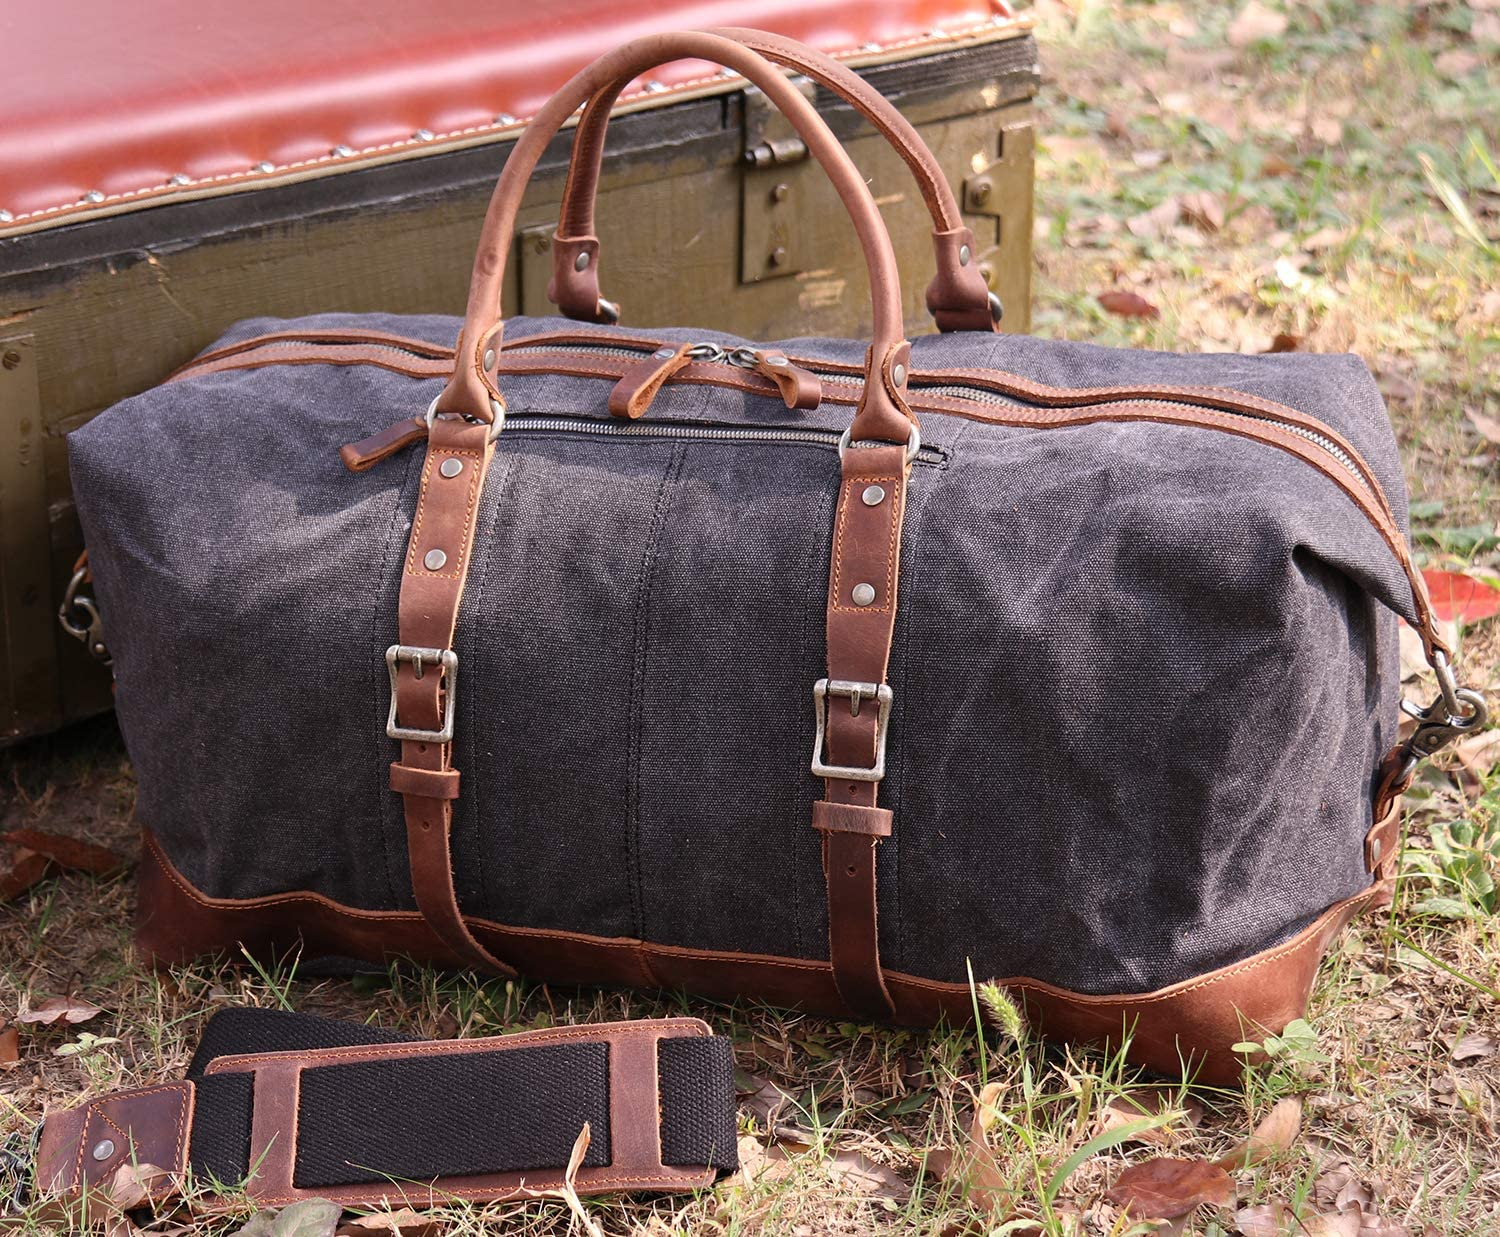 Iblue Genuine Leather Travel Weekend Bag Carry On Duffel Tote Luggage Black D04 #D04 black